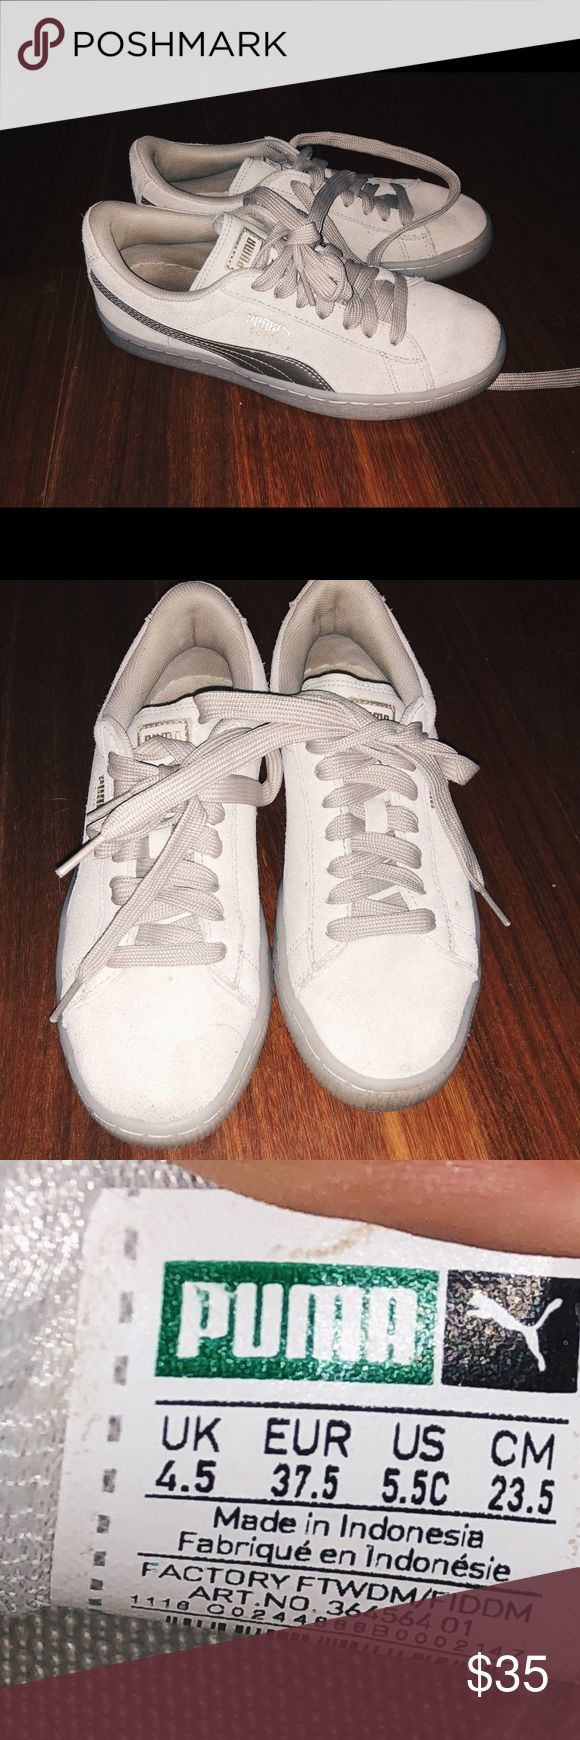 Puma Suede Trainers womens 6.5 Super cute beigeish gray colored puma suedes! Marked at kids 4.5, so womens 6.5. Worn a few times but in good condition. Comment questions! Puma Shoes Sneakers